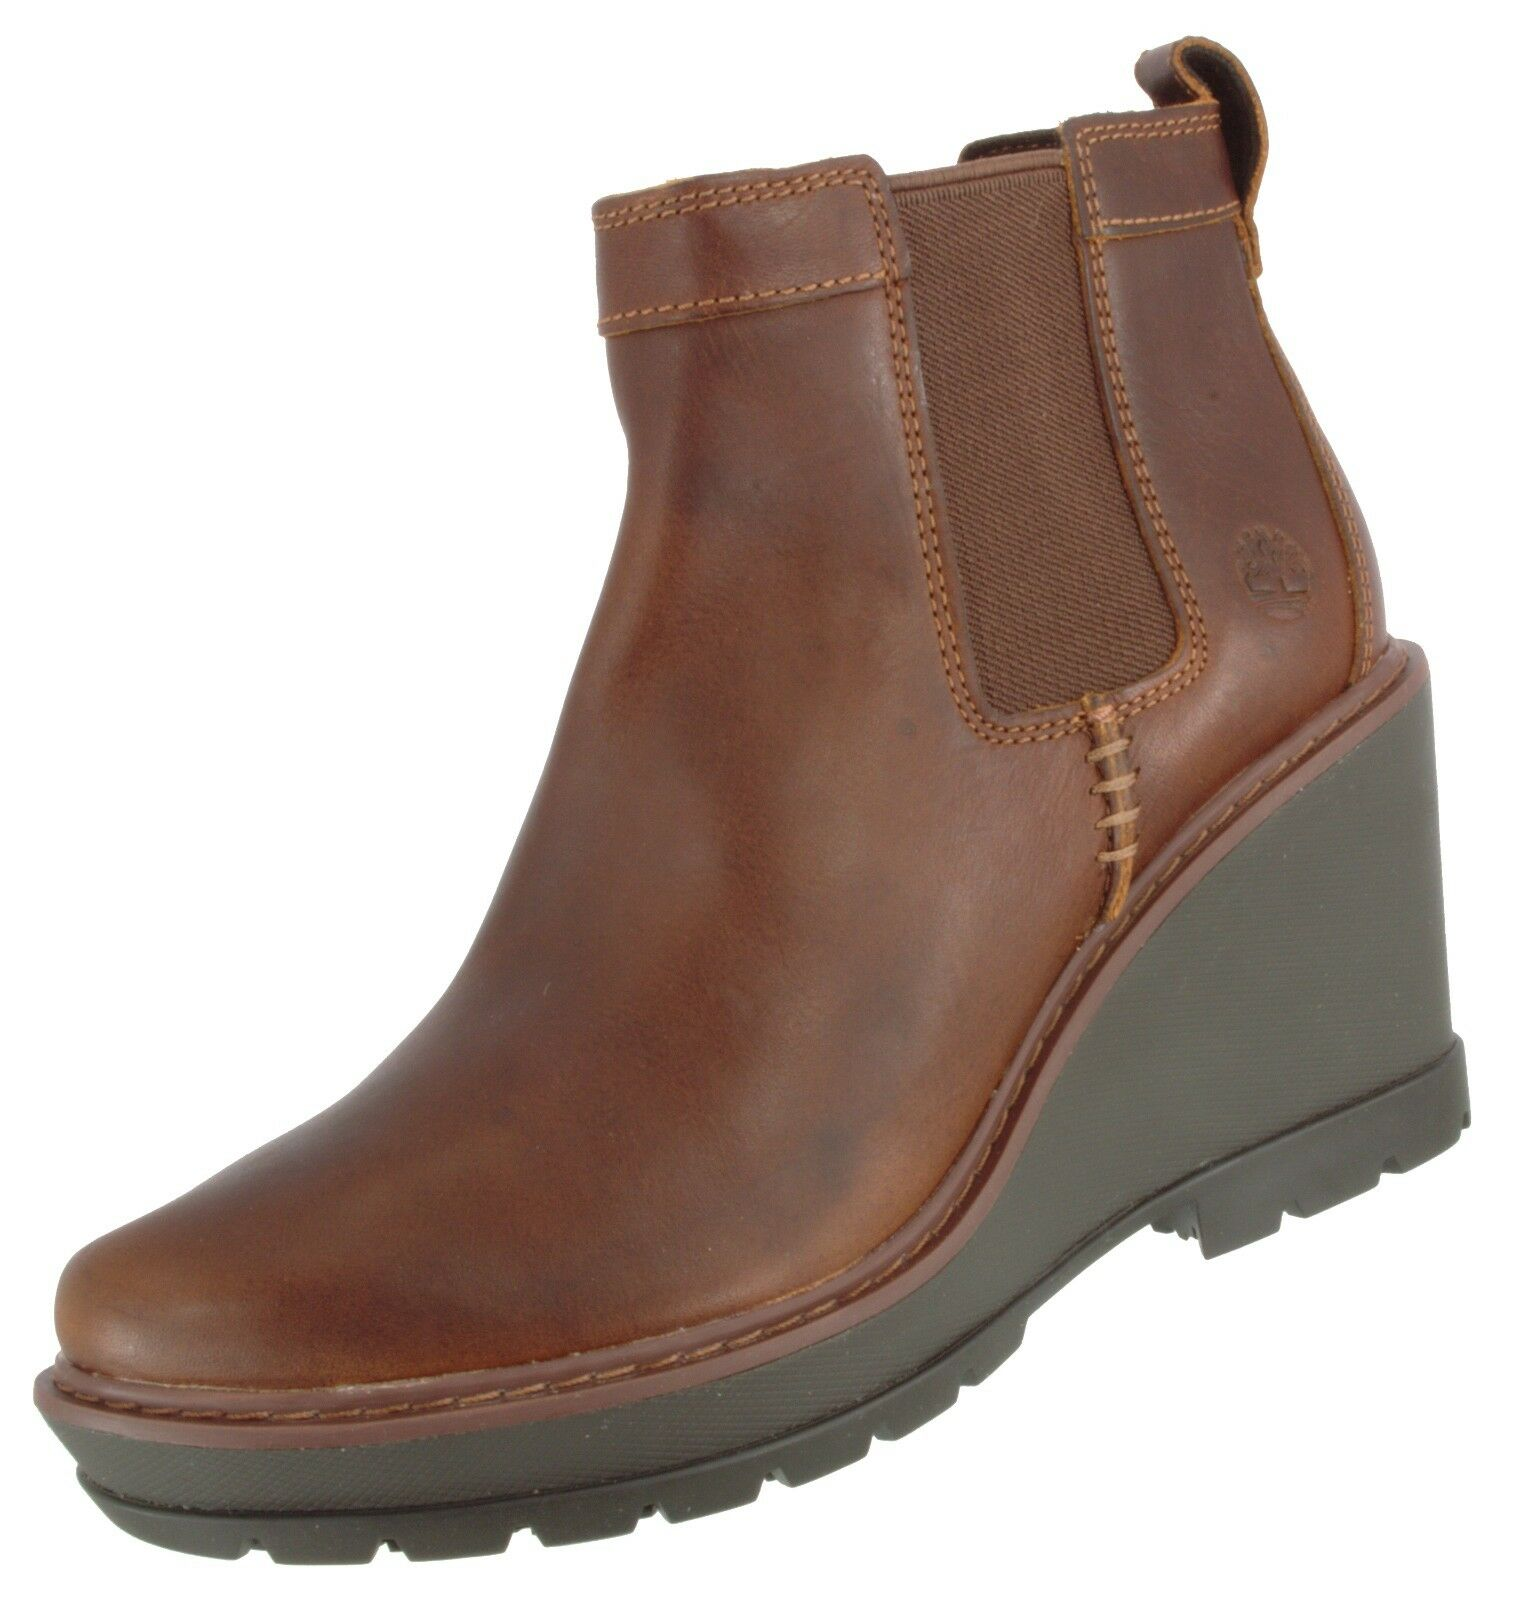 TIMBERLAND CHELSEA DEFECT SAMPLE WOMEN'S KELLIS WEDGE GORE CHELSEA TIMBERLAND LEATHER BOOT US 7 178e8c